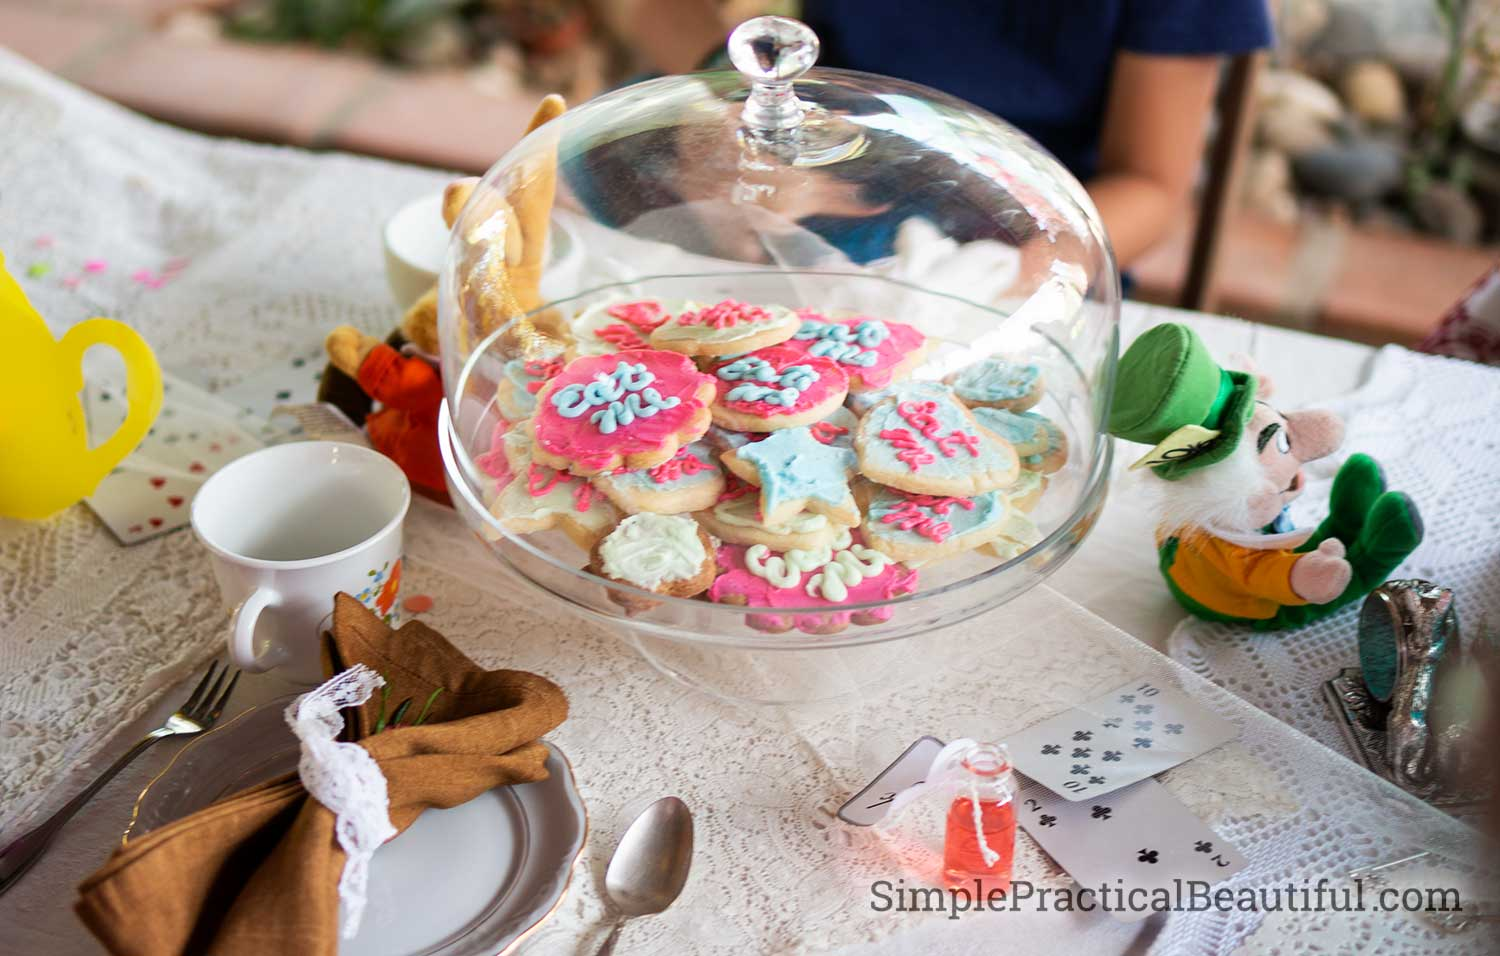 Eat Me cookies at an Alice in Wonderland tea party